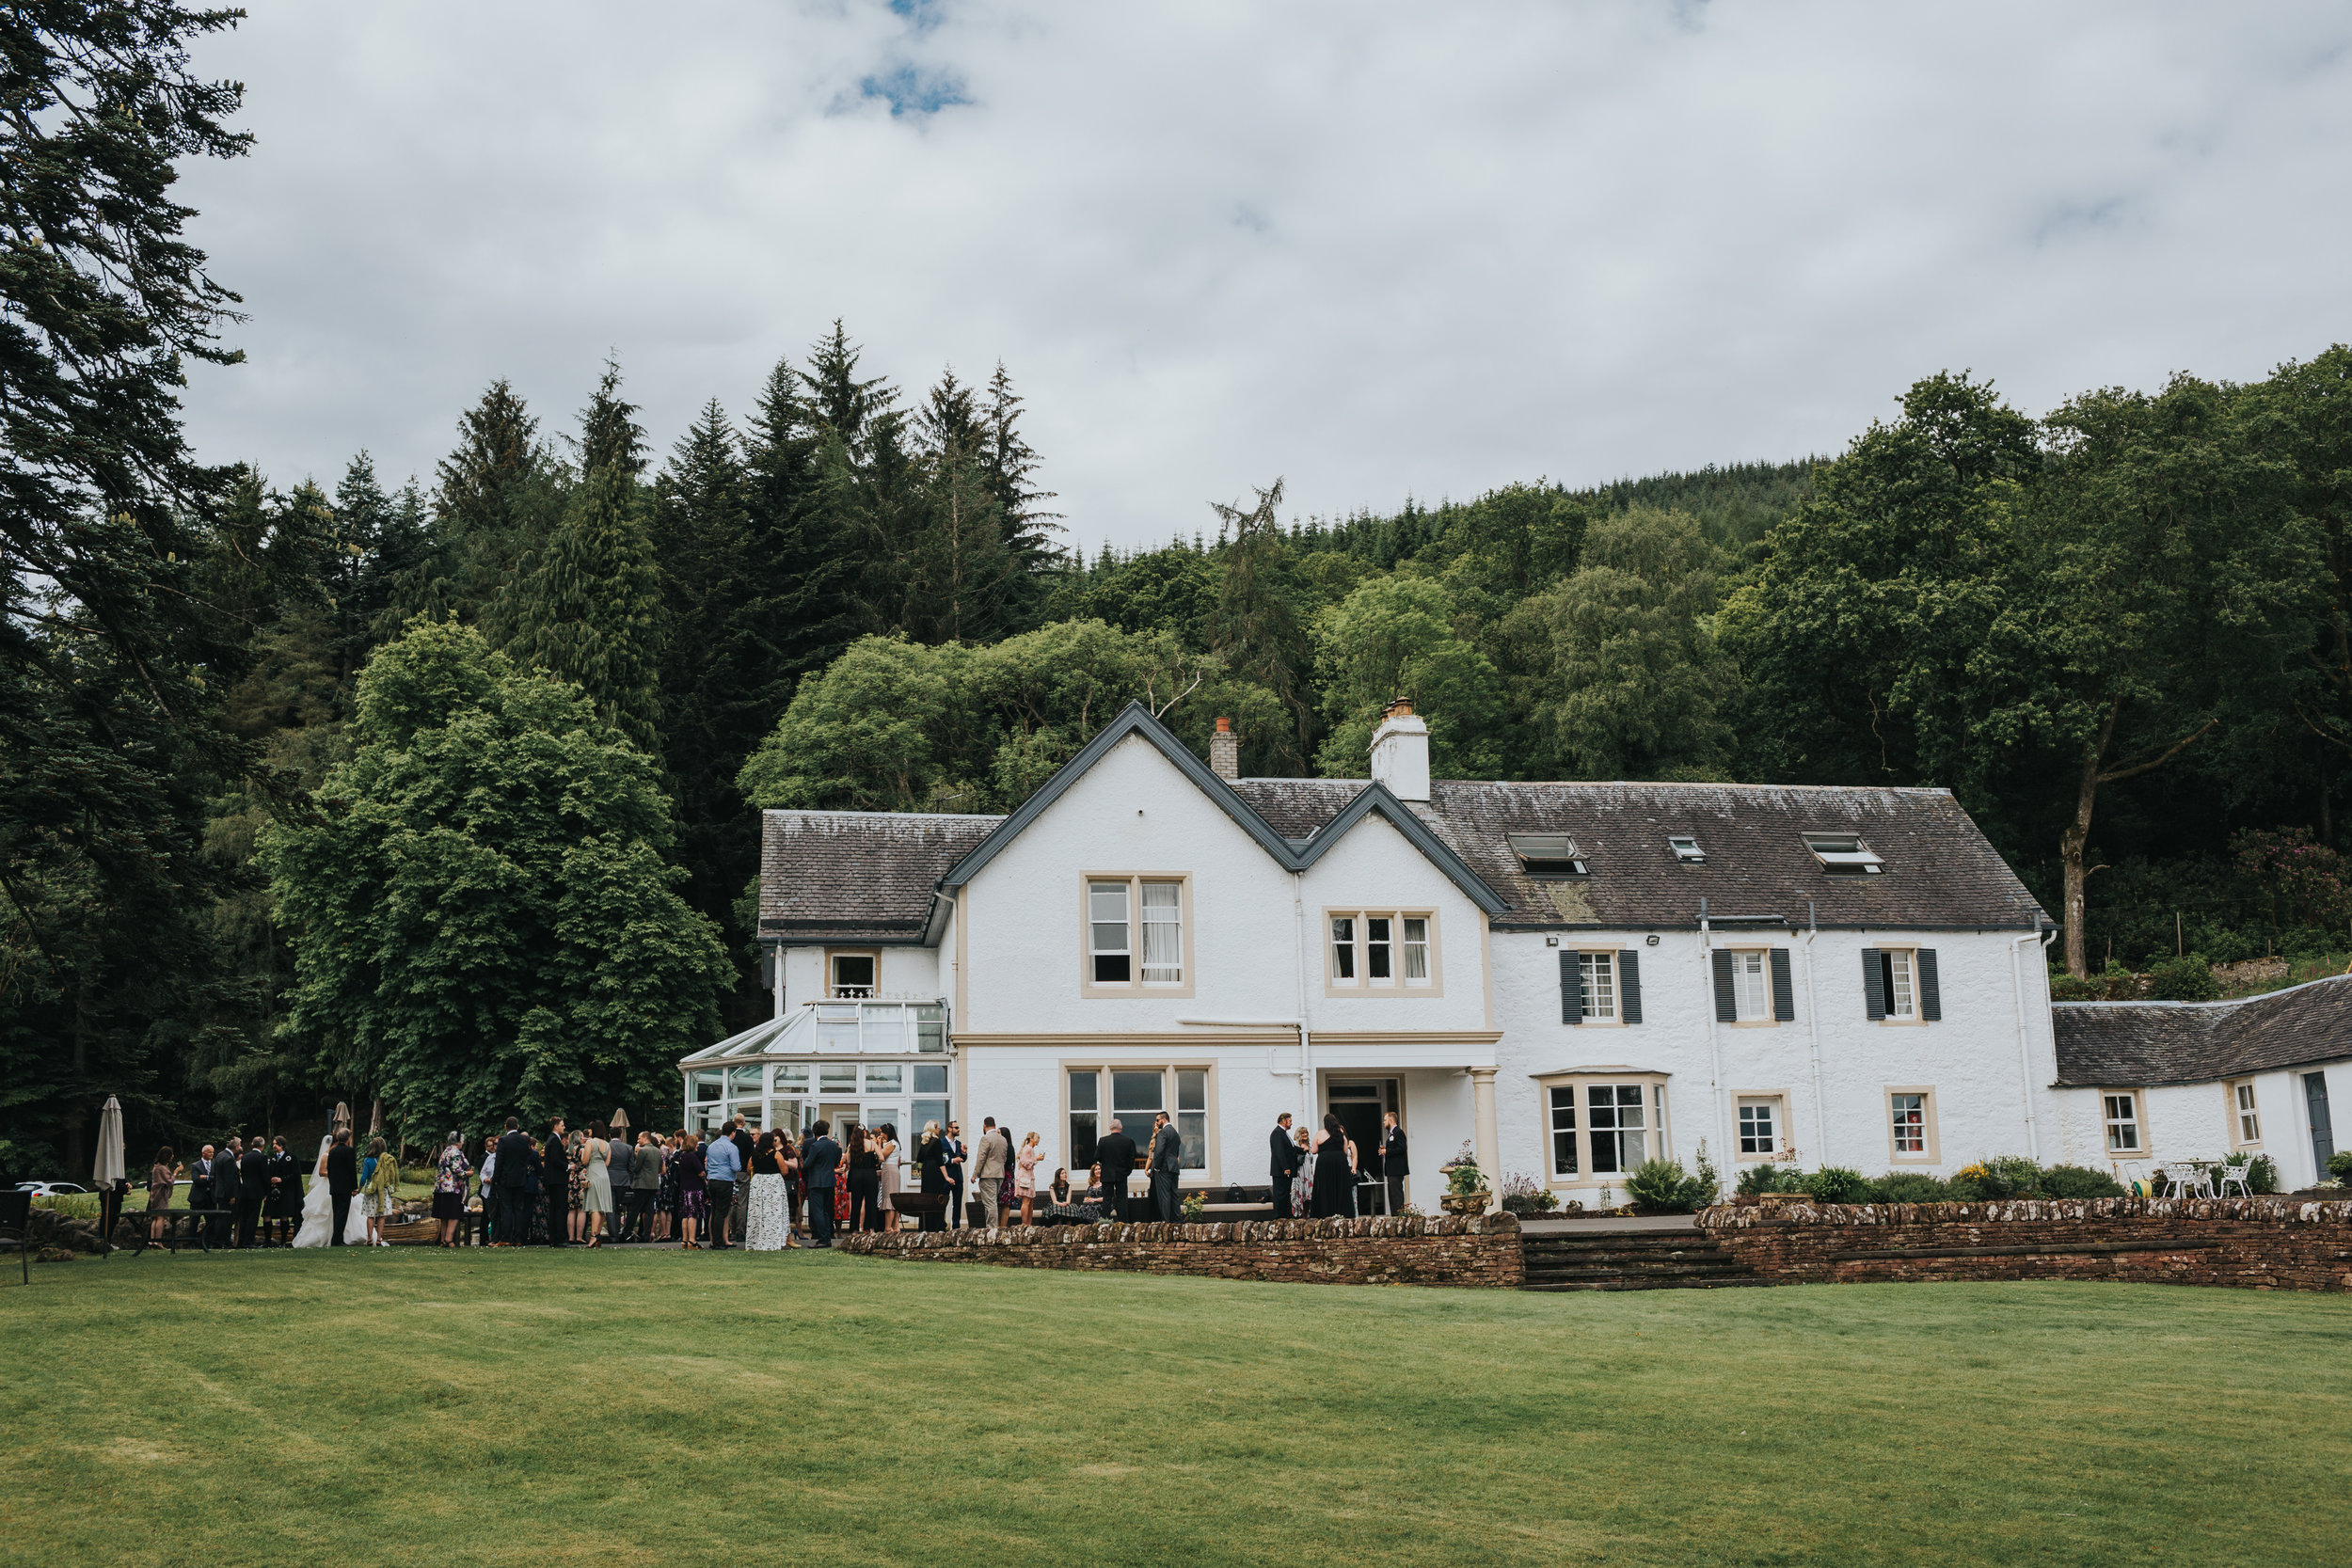 Wedding guests outside Altskeith Country House.